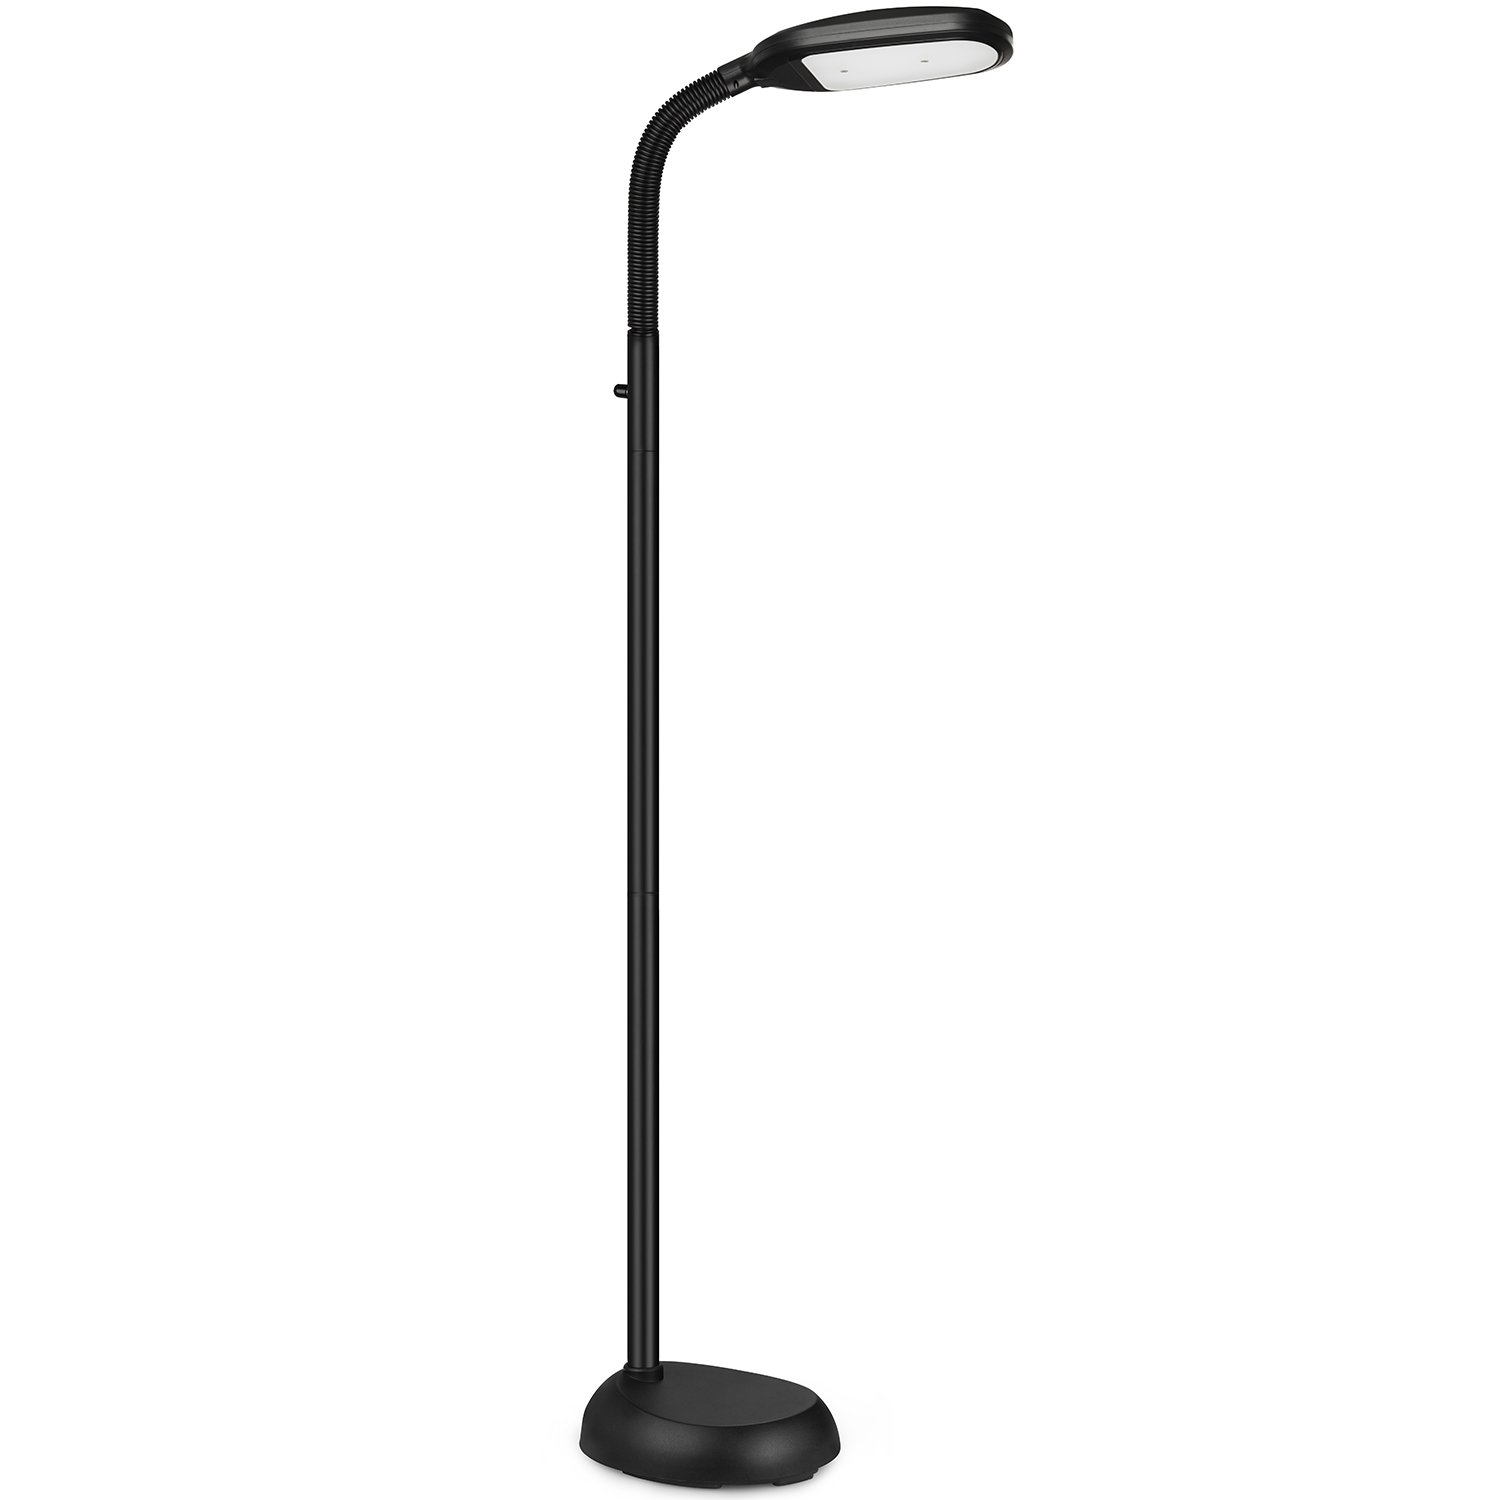 SHINE HAI LED Floor Lamp – Dimmable Natural Daylight Sunlight LED Reading And Craft Standing Light Full Spectrum- Adjustable Gooseneck In Any Direction For Living Room Bedroom Office – Black